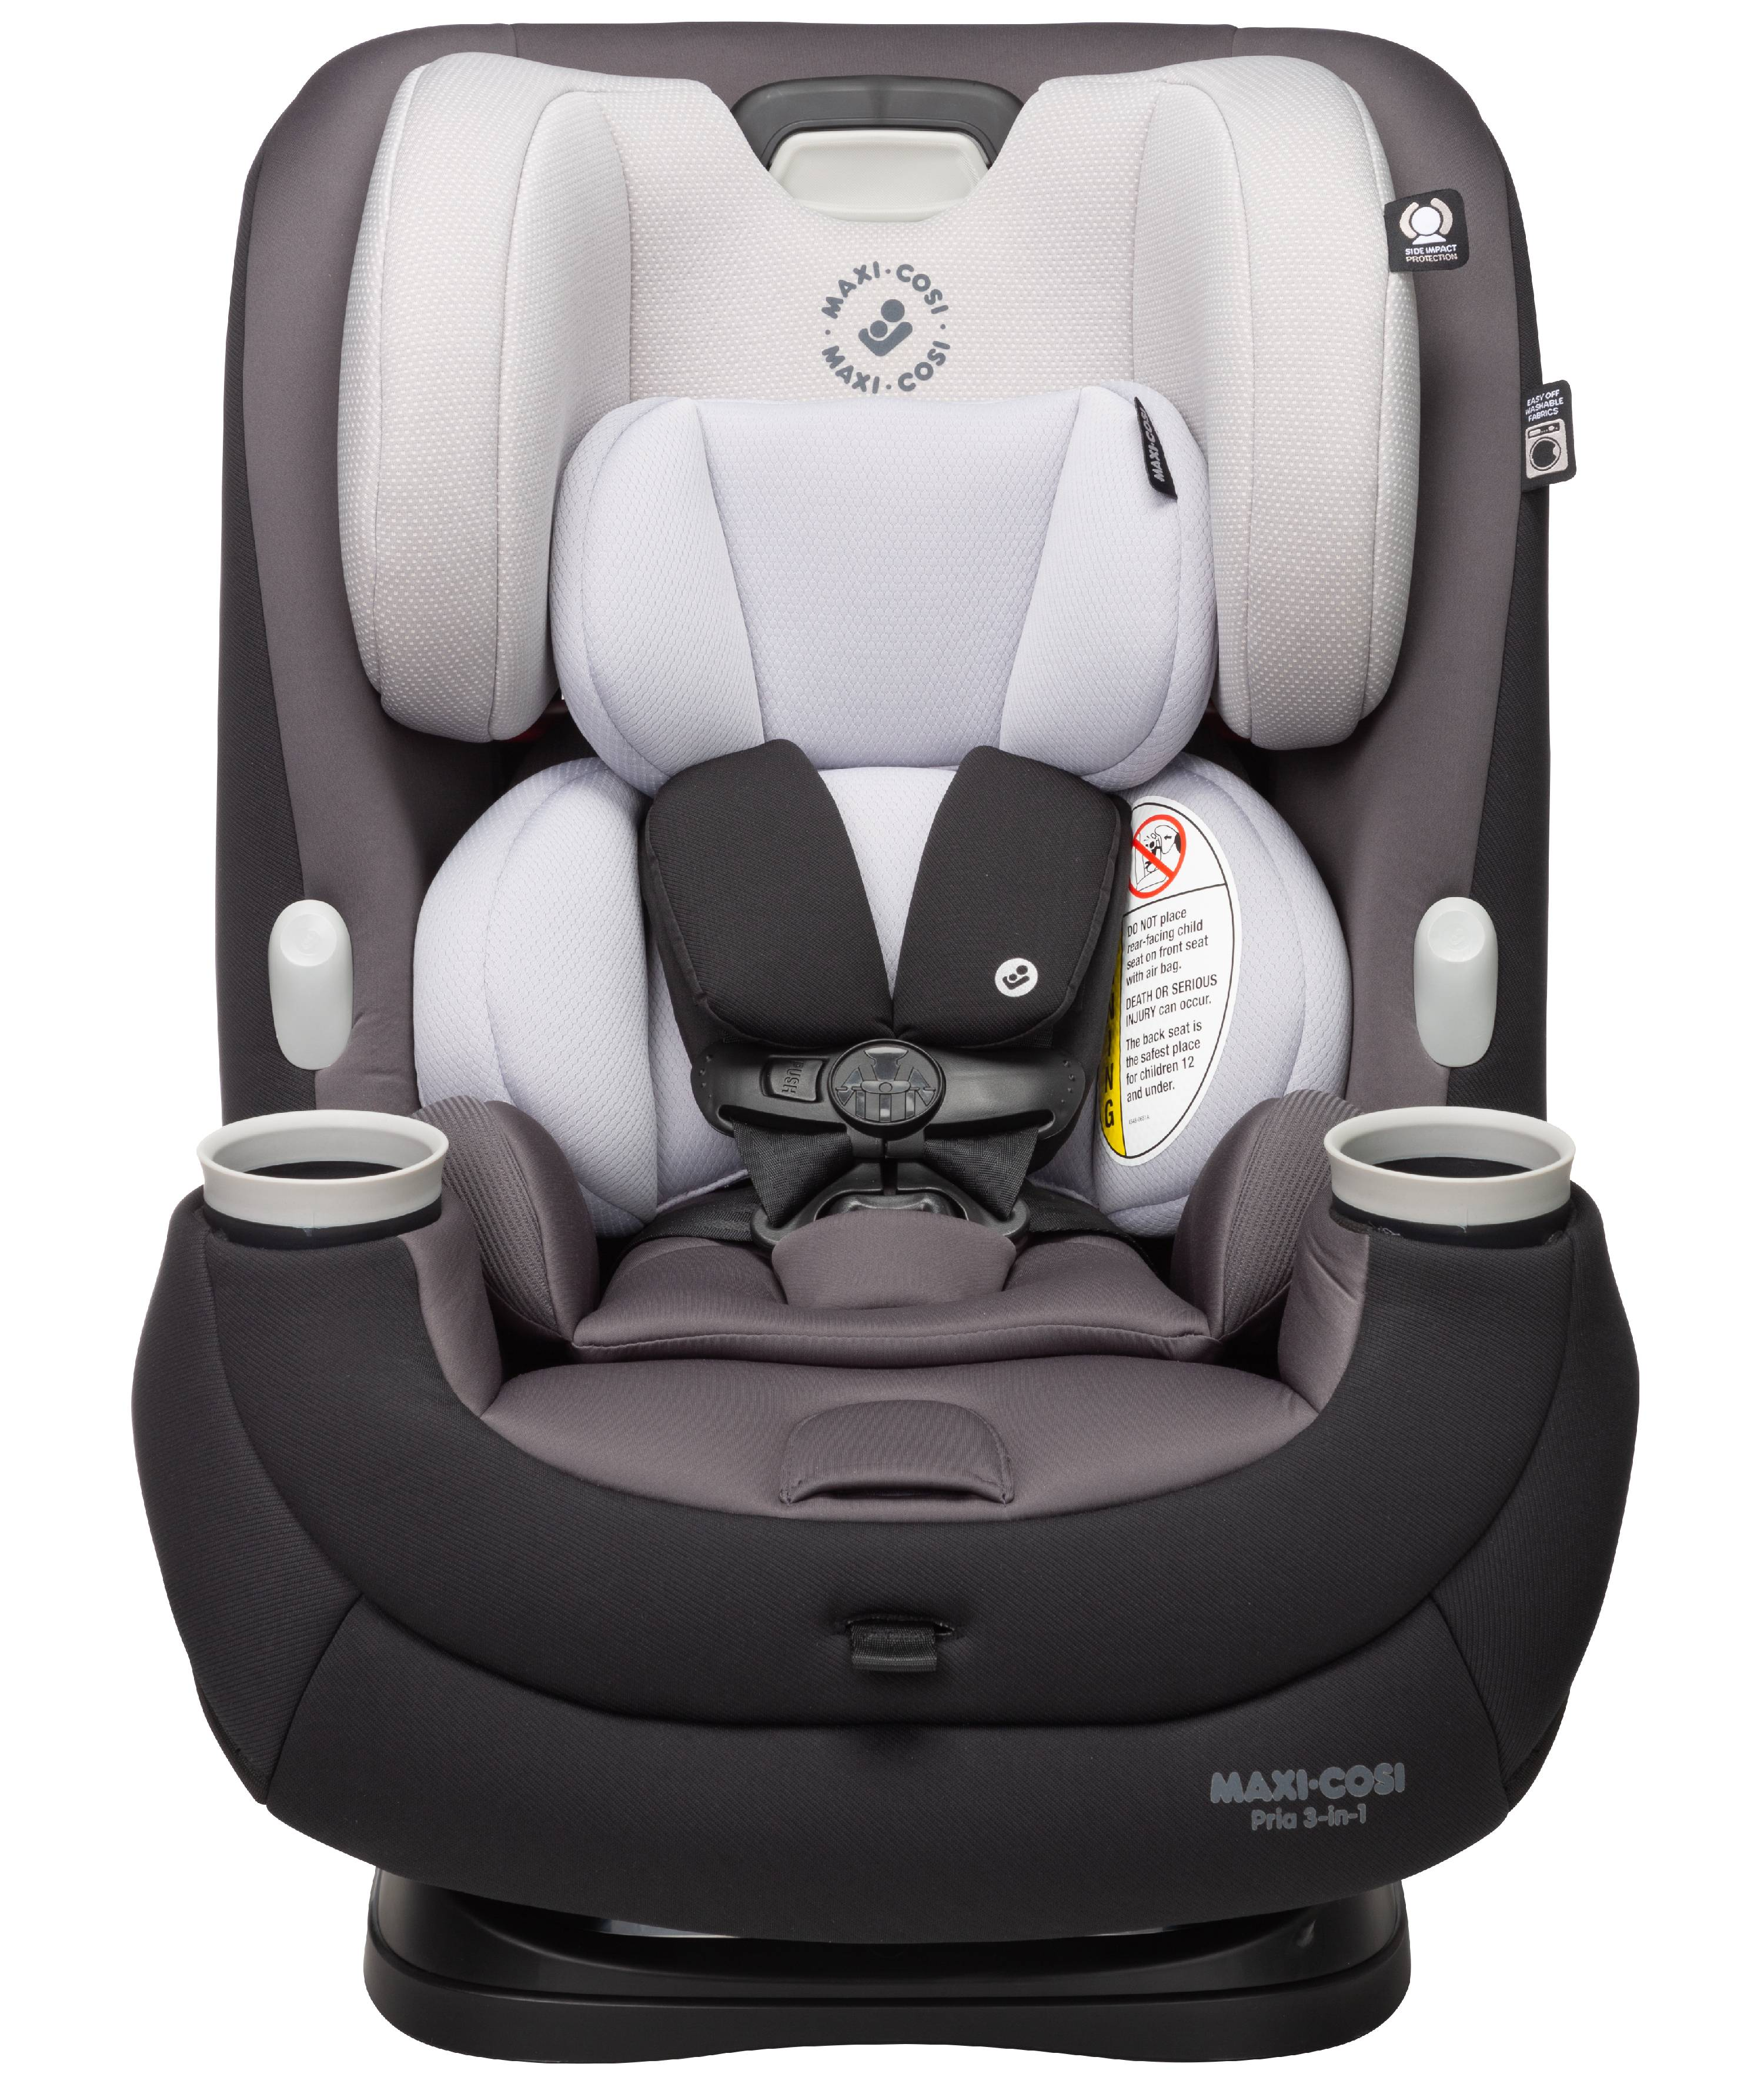 Baby Center Maxi Cosi Pearl Maxi Cosi Pria 3 In 1 Convertible Car Seat Blackened